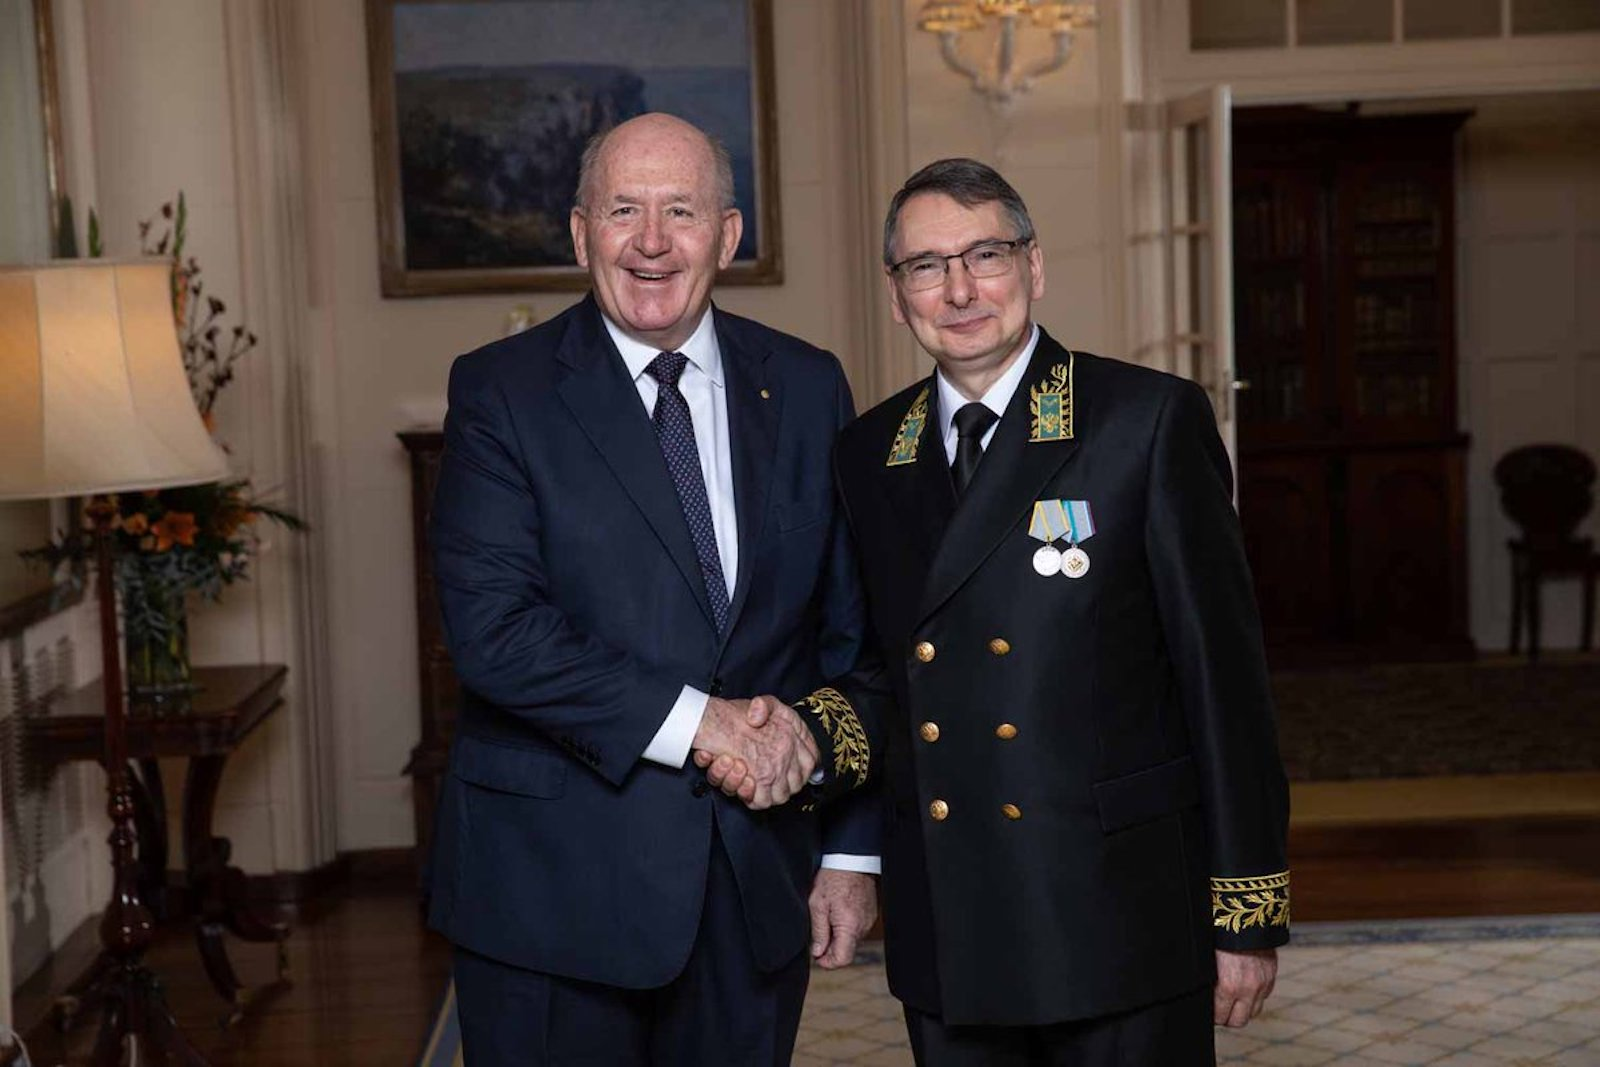 Governor-General Peter Cosgrove after receiving Letters of Credence from Dr Alexey Pavlovsky, accrediting him Ambassador of the Russian Federation (Photo: gg.gov.au)